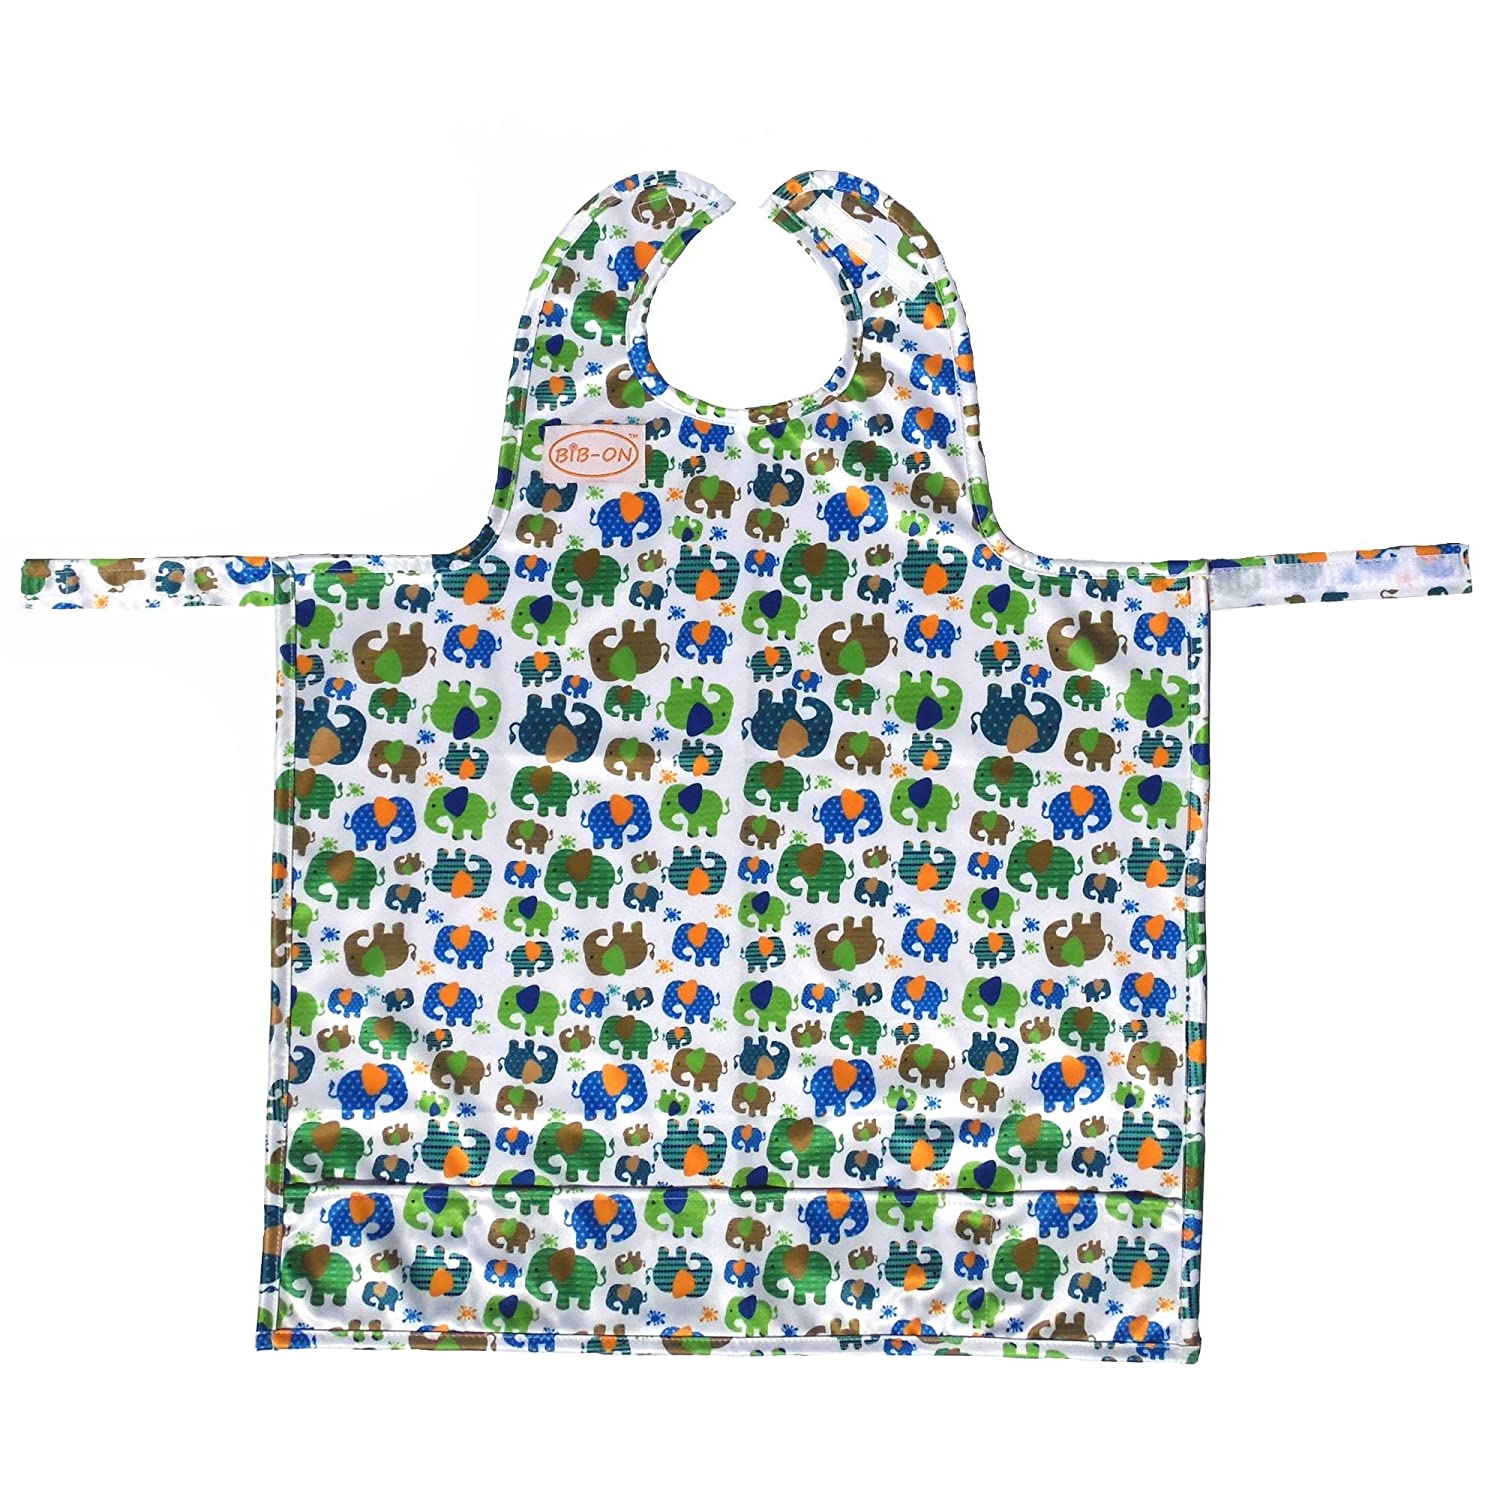 c750b00c6fd56 BIB-ON, A New, Full-Coverage Bib and Apron Combination for Infant, Baby,  Toddler Ages 0-4+. One Size...